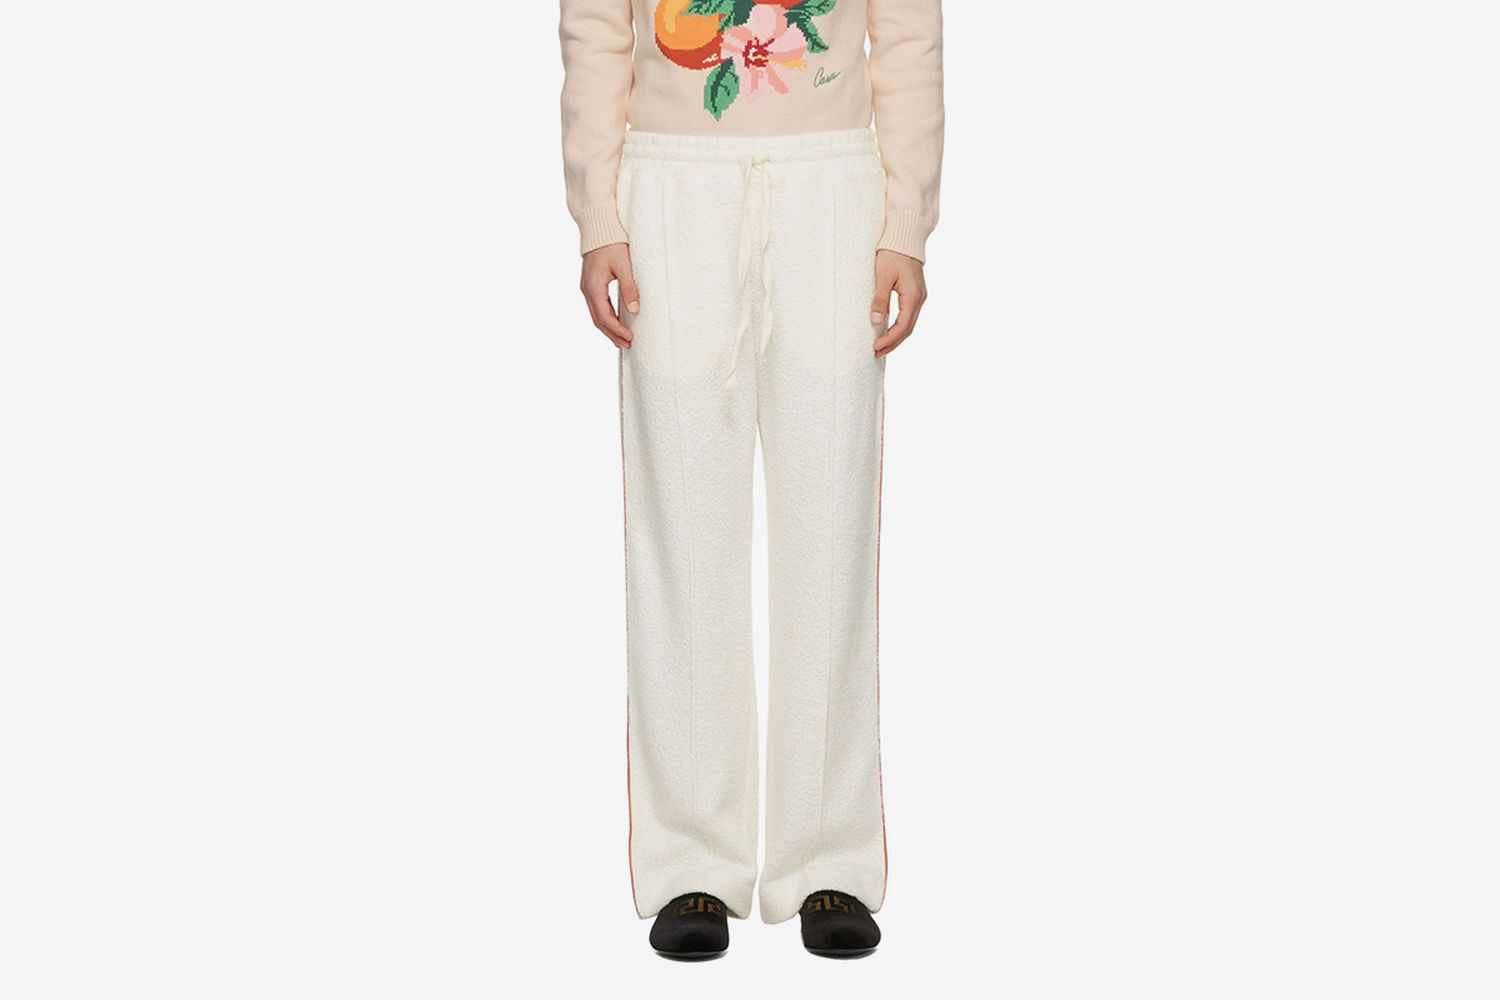 Piped Terry Lounge Pants